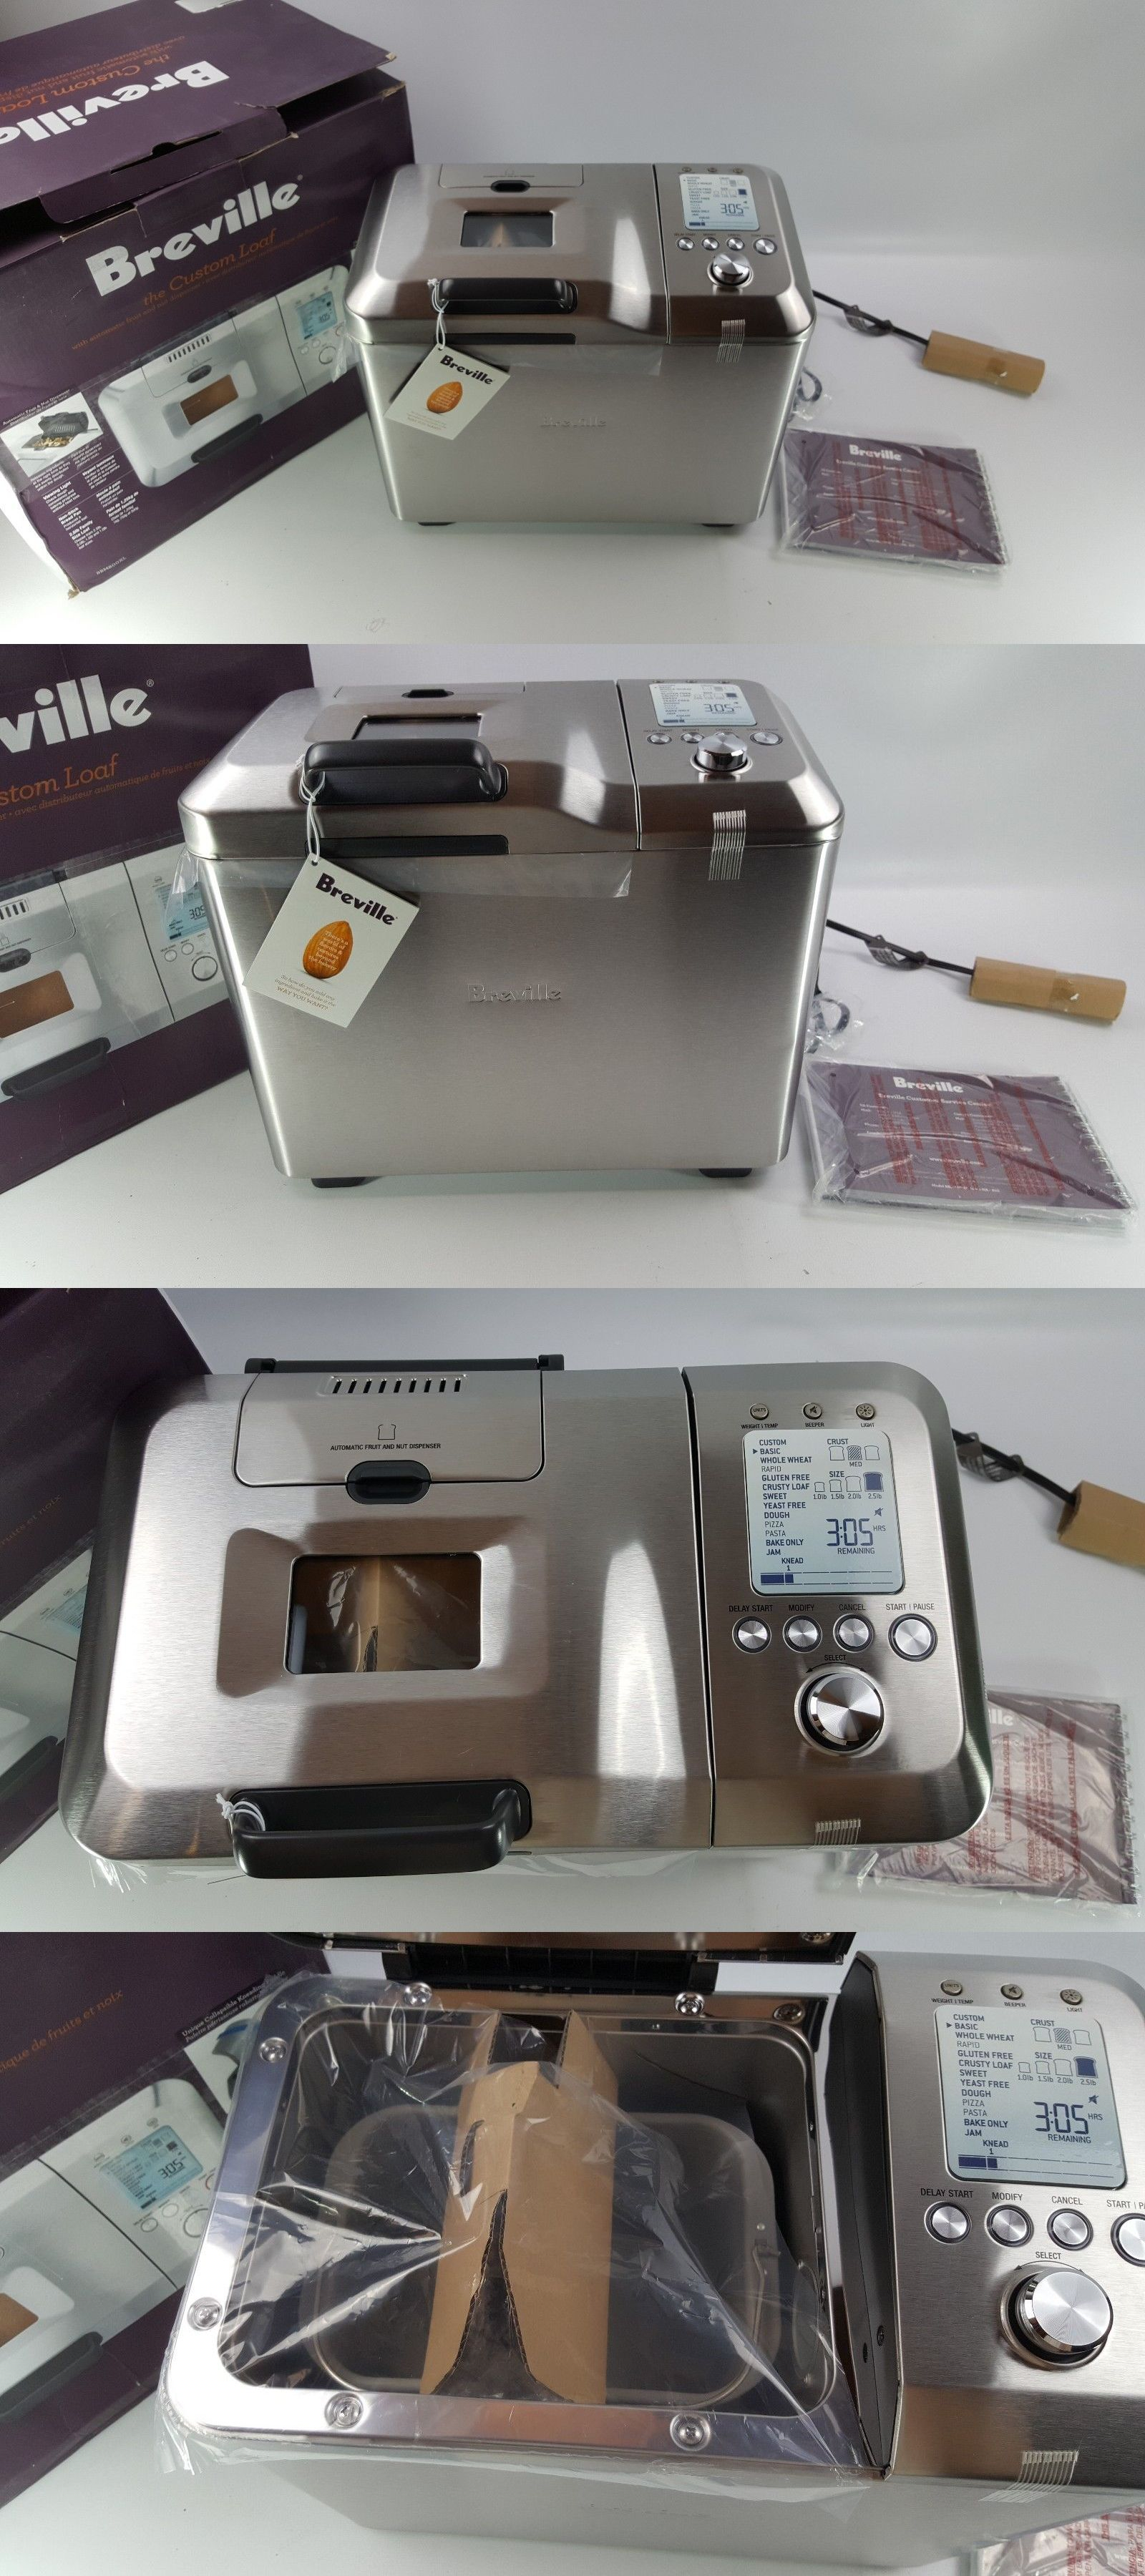 Bread Machines 20669 Breville Bbm800xl Custom Loaf Bread Maker Brand New Open Box Buy It Now Only 150 On Ebay Loaf Bread Bread Maker Bread Machine